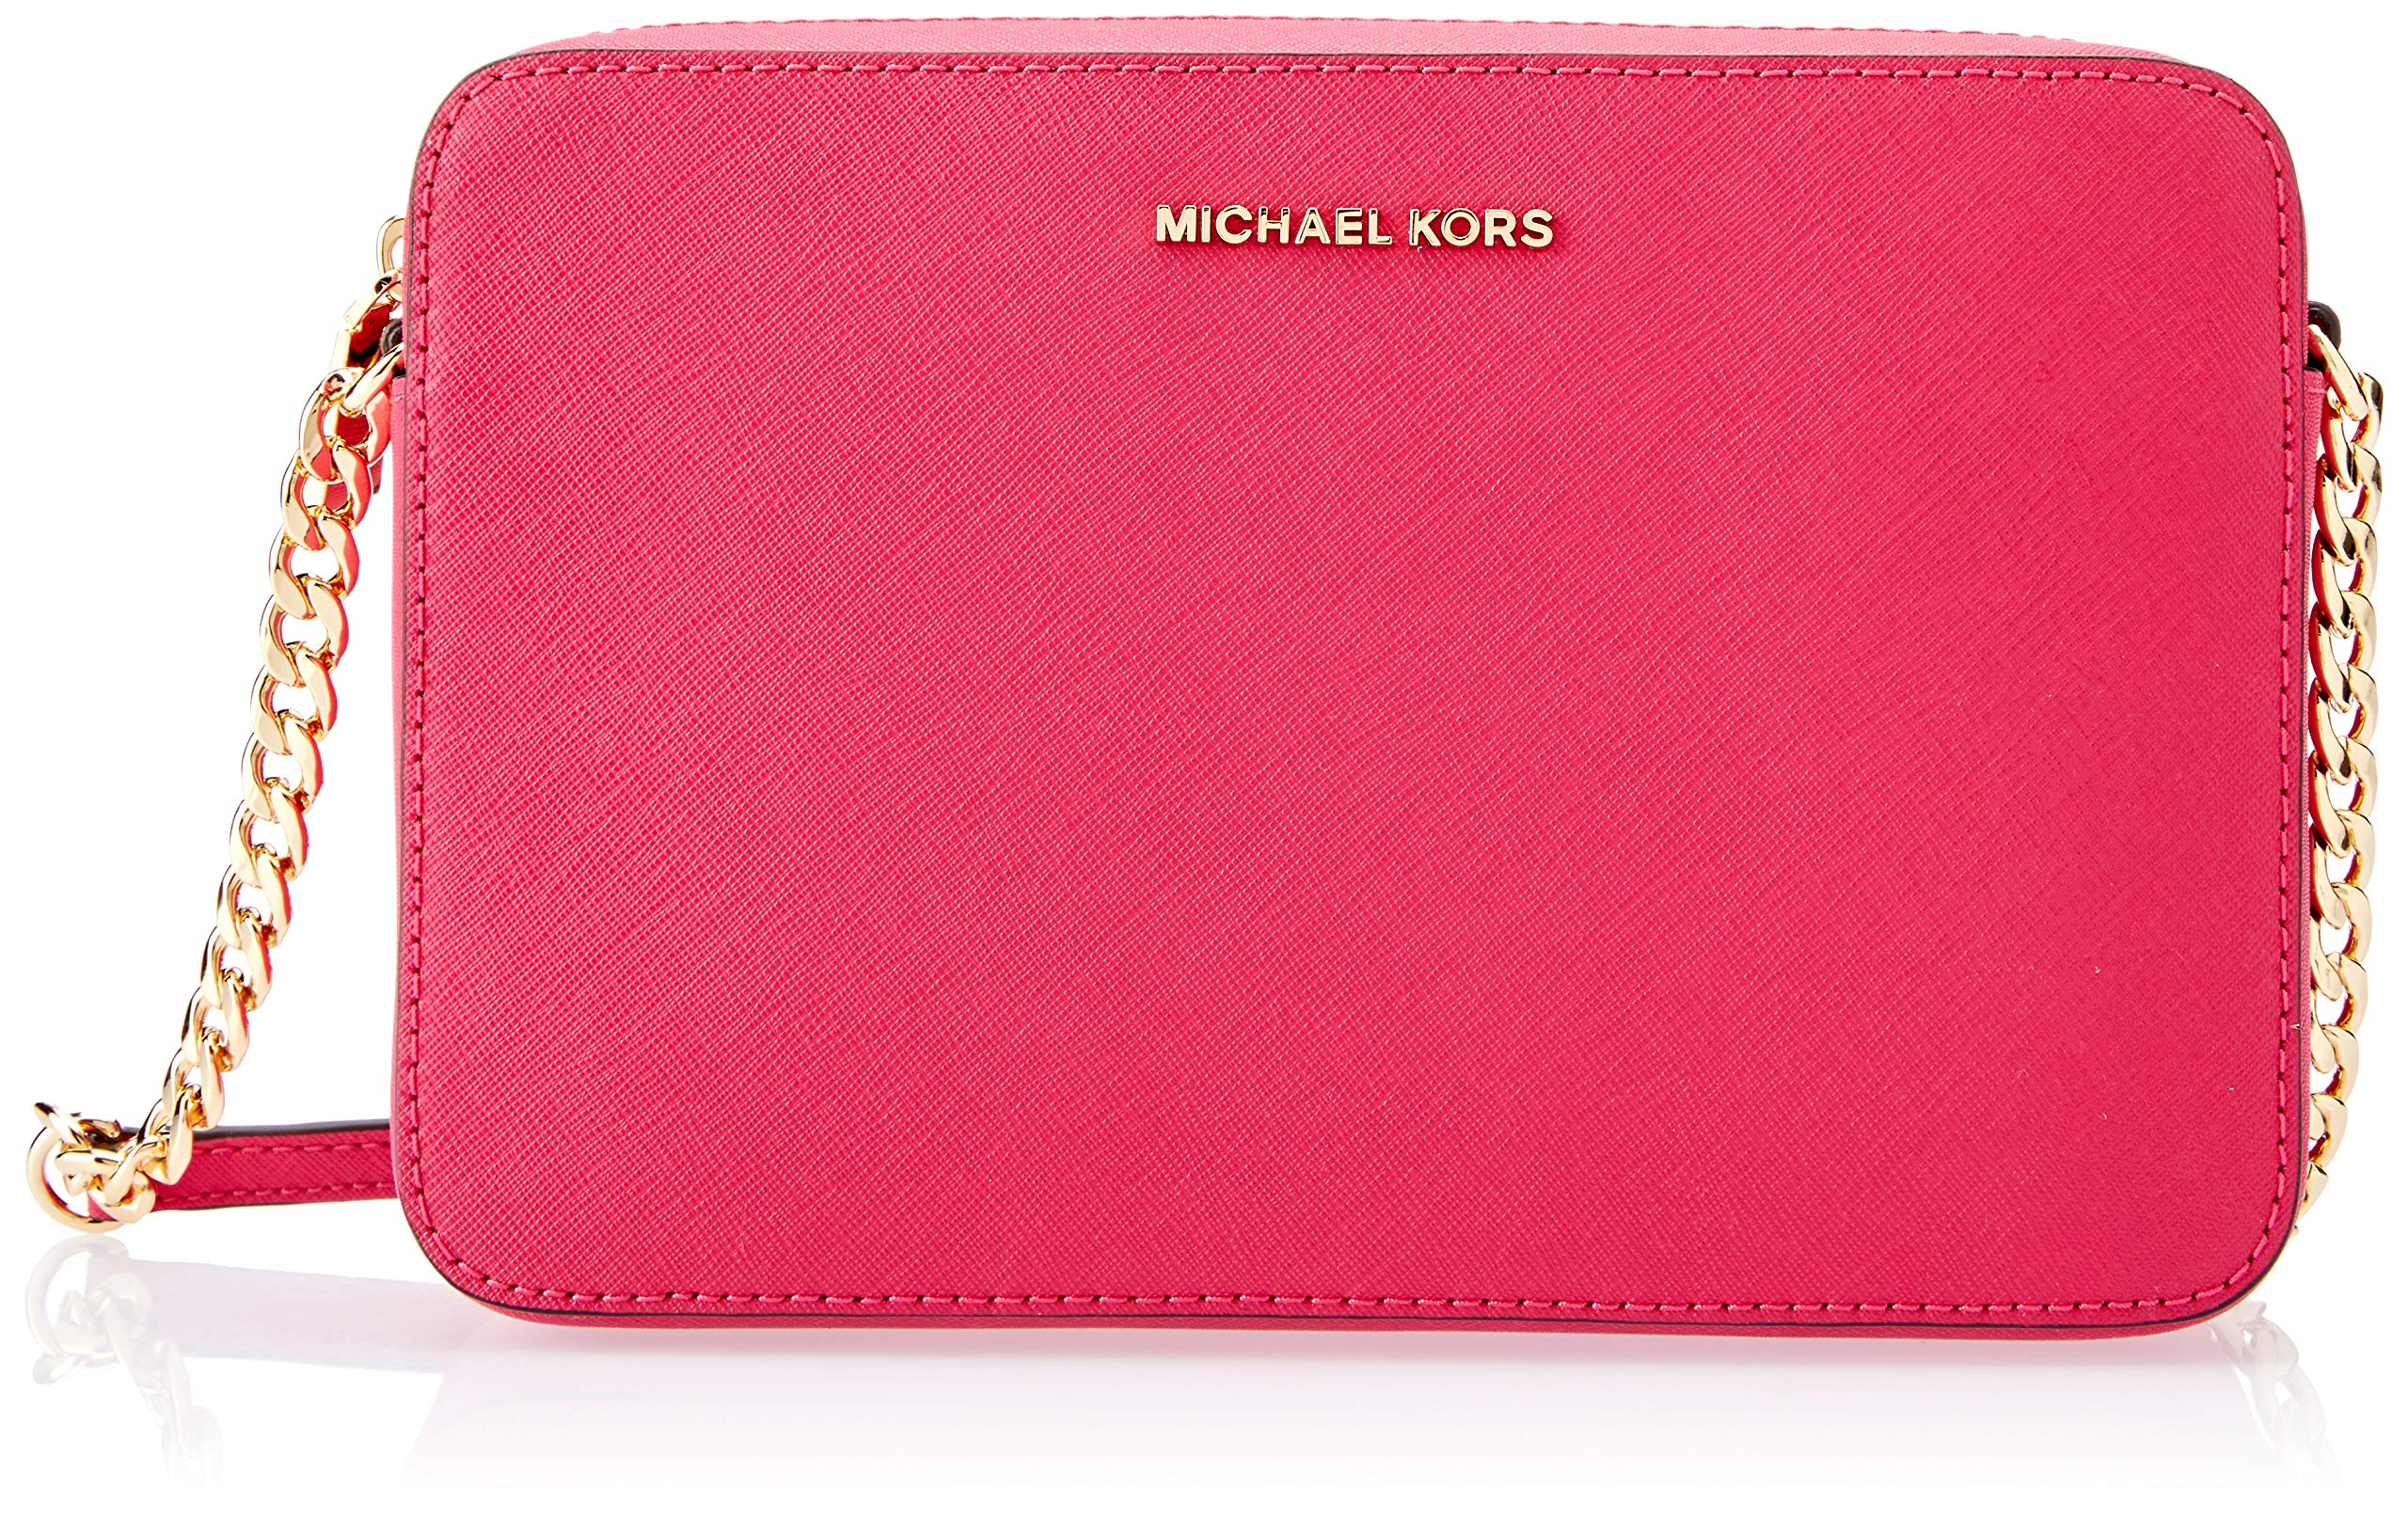 michael kors handbags 2017 amazon com rh amazon com